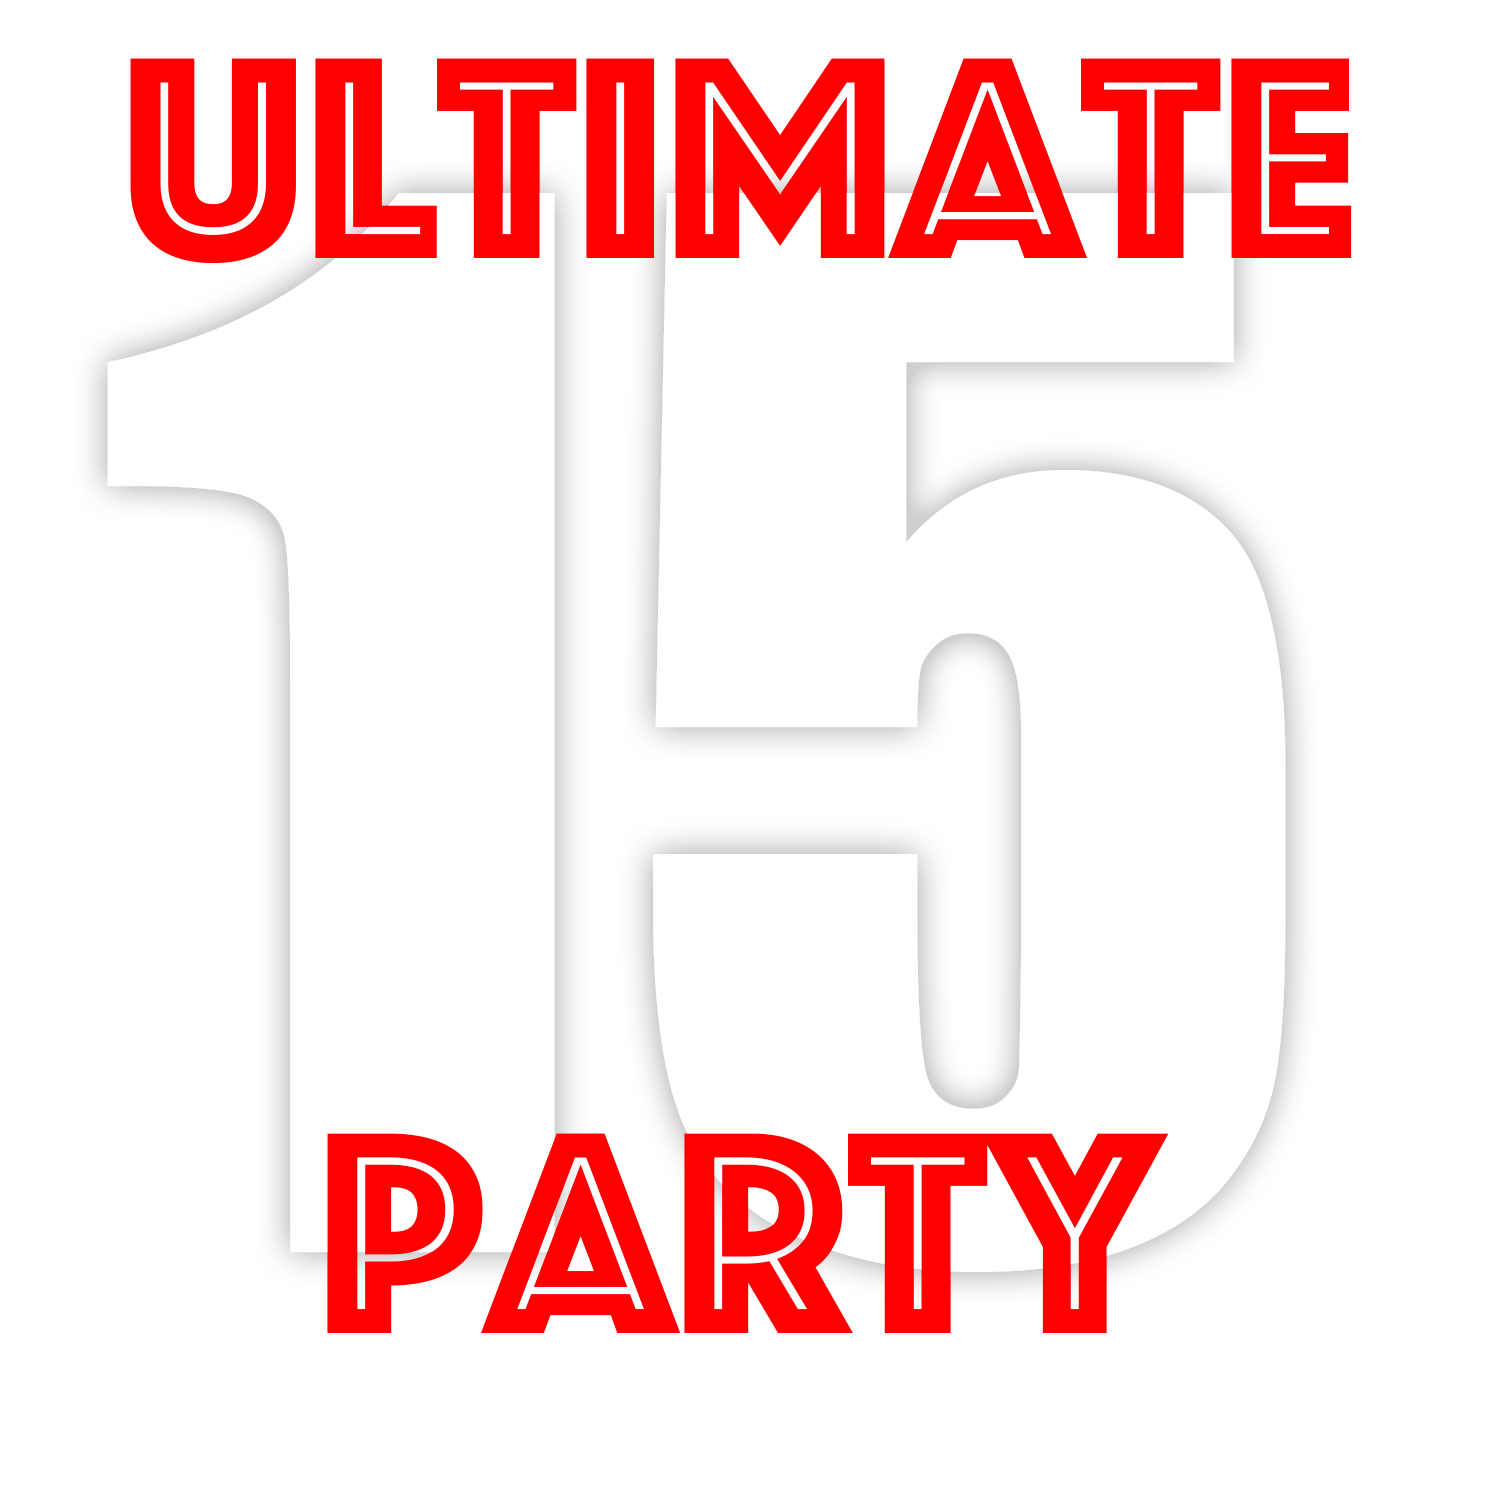 $345 - Includes a Full Party for Fifteen Guests in the Large Party RoomAdditional guests: $23/Person(Room capacity of 50)——————————————Each Party Guest Receives the Following:Unlimited Wristband for All Day Access to All Rides, Attractions, and Video Games in the Park (Even After the Party Room Time Has Ended!)Two Slices of PizzaOne Medium DrinkOne Ice Cream Cup——————————————Also Includes:1 Hour and 45 Minutes scheduled in the Large Party RoomConvenient Guest Check-In with a party list at the main entranceFree Adult Walk-In Admission for all adults attending the party who do not wish to participate (But, adults can have fun too if you would like to include them as party guests!)One Free Adult Go-Kart Driver Band for a Designated Adult to Drive Kids on the GoKarts if Any Are Not Yet Able To Drive Themselves (Additional Go-Kart Driver Bands: $5.99)Complimentary Party Room Cleanup after the party room time has ended——————————————Alternate Large Party Configurations Available:Large Party without Ice Cream…… $330 for Fifteen Guests + $22/Person for Additional GuestsLarge Party without Pizza or Ice Cream…… $285 for Fifteen Guests + $19/Person for Additional Guests——————————————Additional Info: A $60 non-refundable deposit is required upon reservation, with the remaining balance being due on the day of the party based on guest turnout. No outside food or drinks are allowed in the party rooms except for birthday cake. All children ages 3-15 are required to have a wristband to enter the park. Adults (16+) are free to enter the park, but must purchase a wristband or be included in the party if they wish to participate.Pricing above valid through February 2020. For parties starting March 2020, add $3/guest to each party package.Last 3 Hours Evening Discount: If booked in the last 3 hours of the day, and if guests do not arrive until the last 3 hours have begun, a special base rate of $20/guest will apply instead of the listed price, or $19/guest if ice cream is excluded, or $16/guest if both pizza and ice cream are excluded with a minimum of 15 guests.